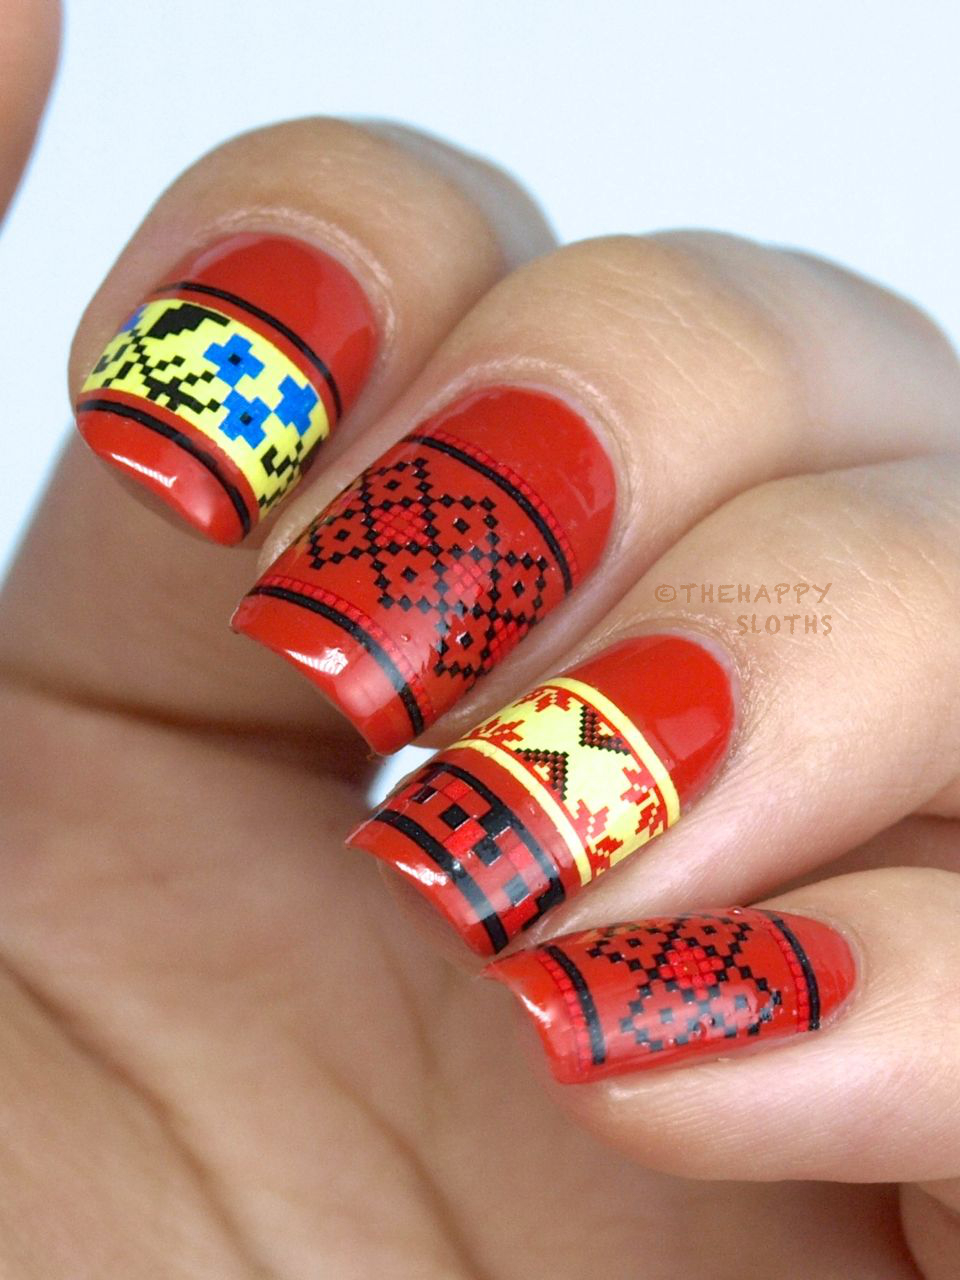 Cross-Stitching Nails: Manicure Featuring Born Pretty Store Water Decals